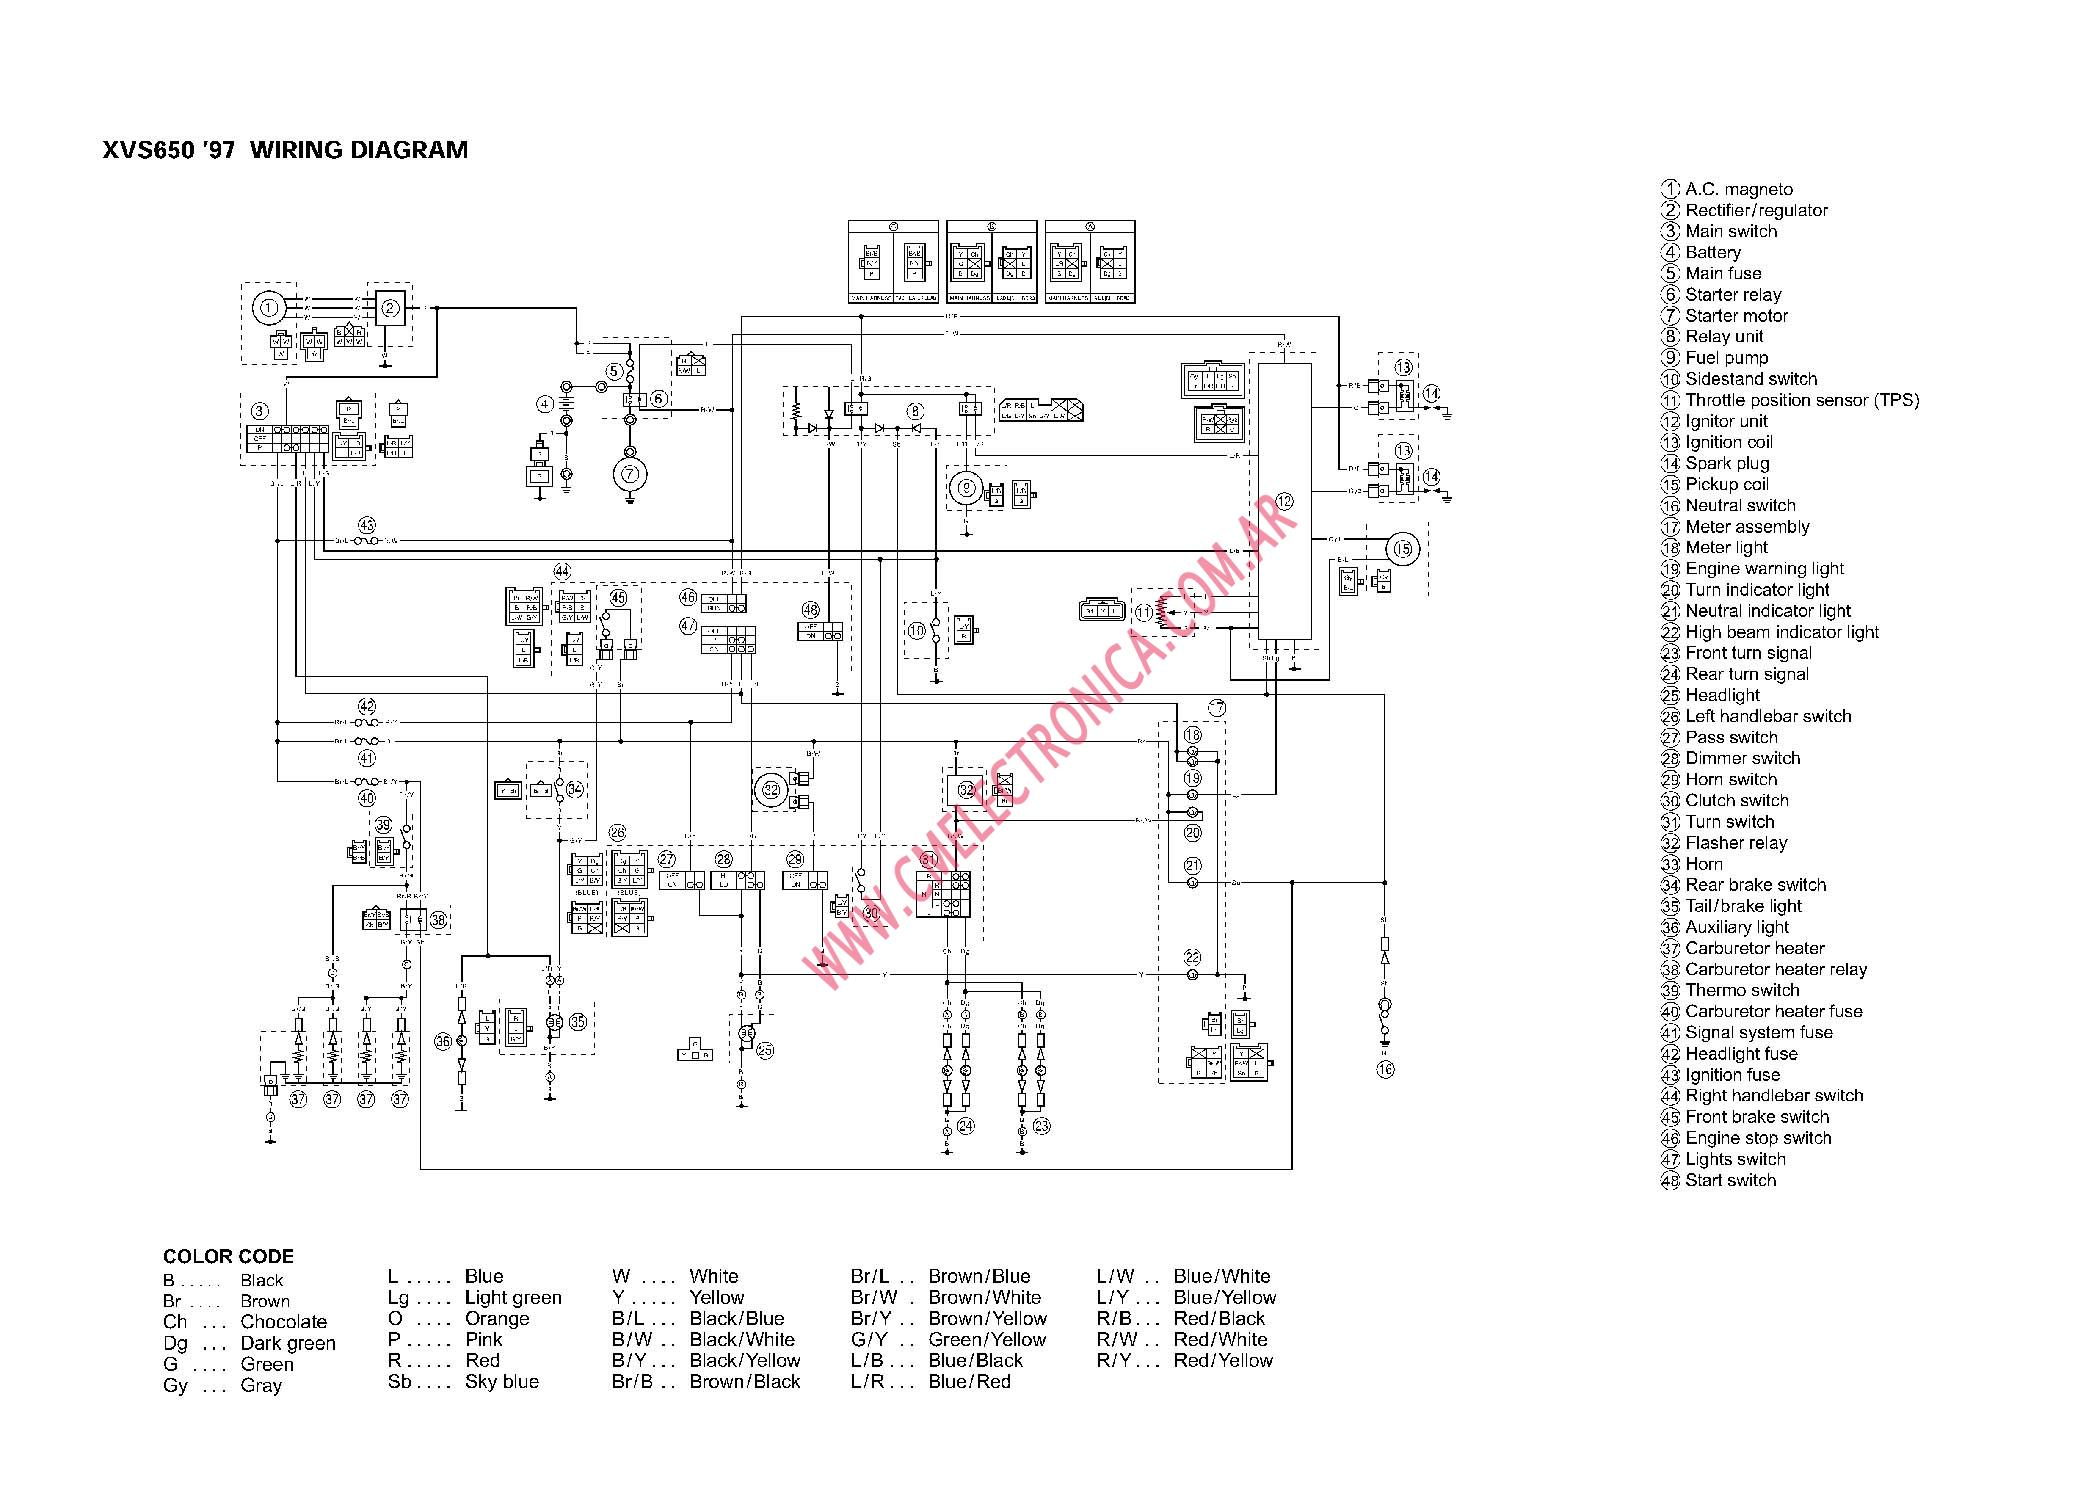 Wiring Diagram Yamaha : Yamaha wiring diagram free engine image for